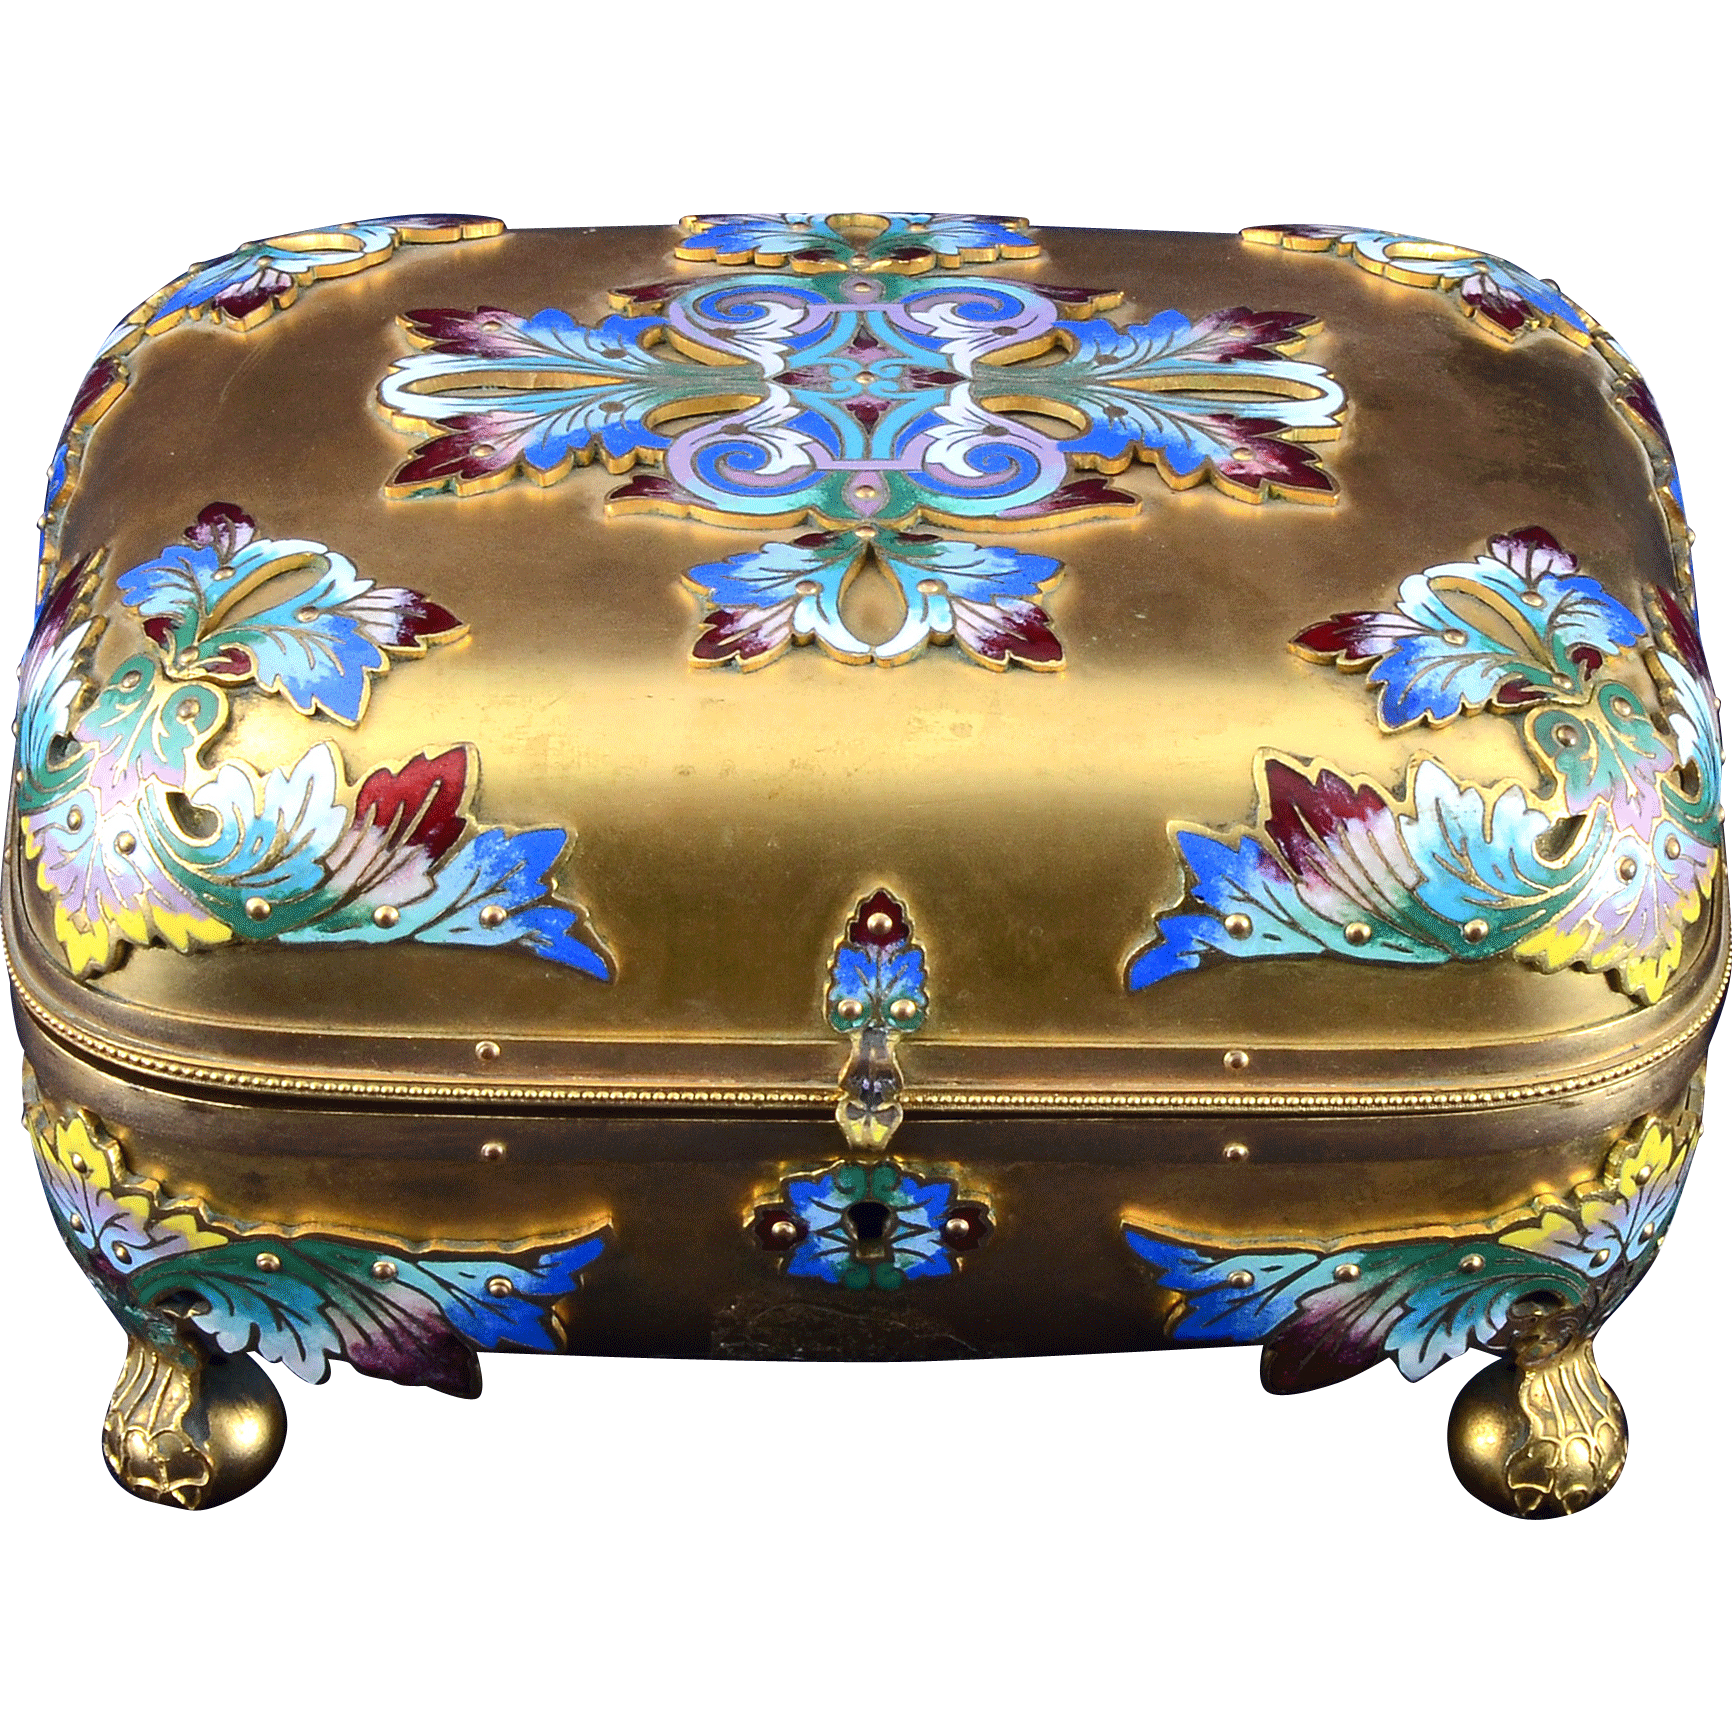 Gold Gilt and Enamel Vanity Box With Matching Perfume Bottles